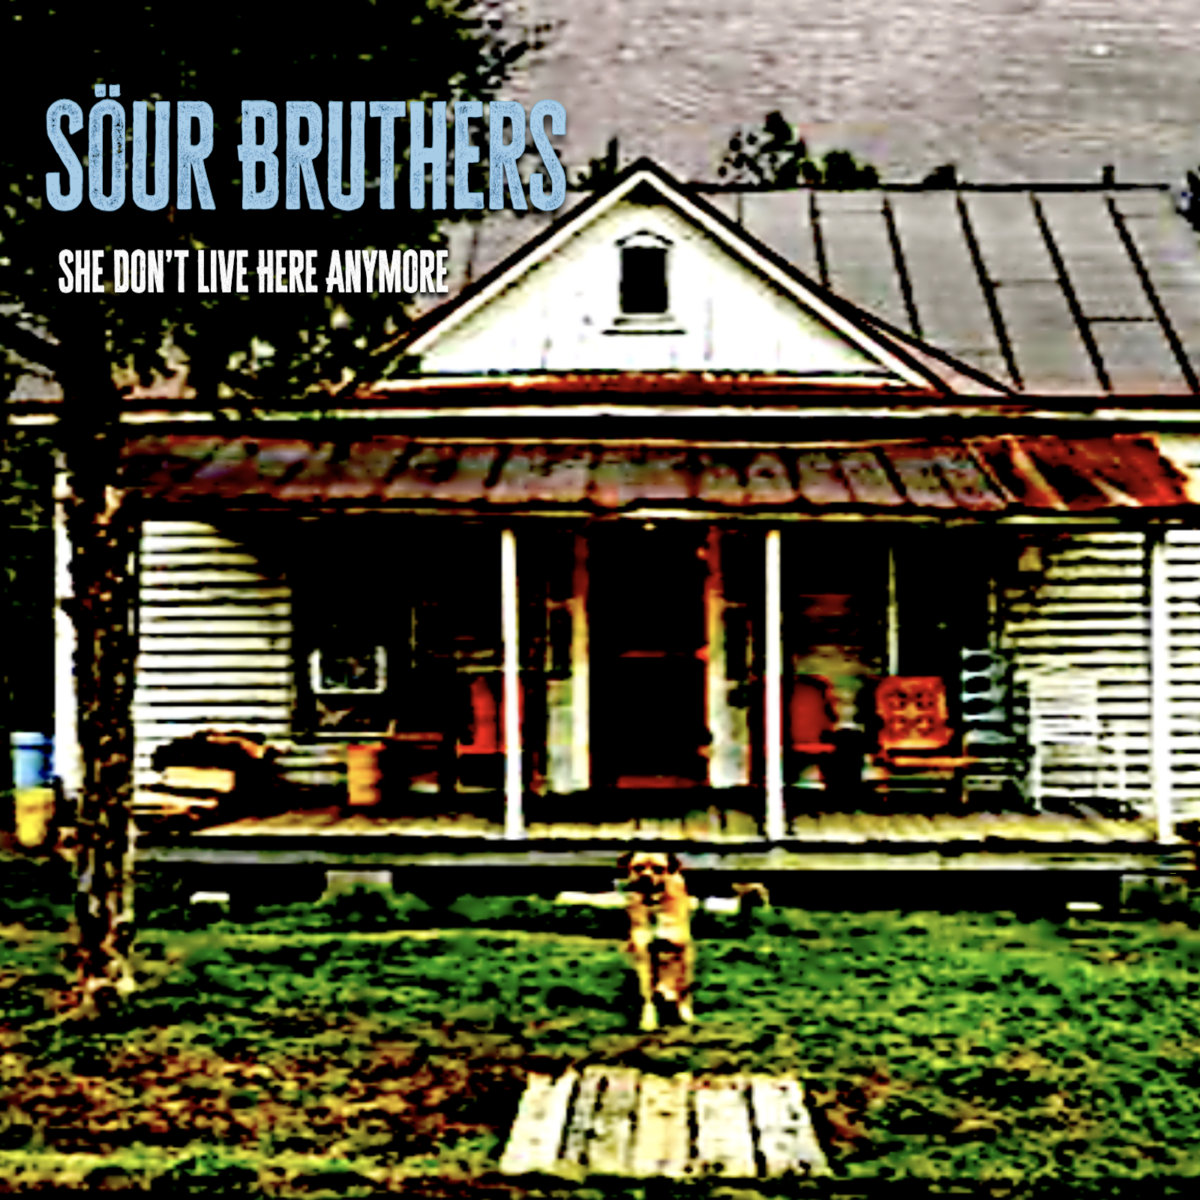 She Don't Live Here Anymore by Söur Bruthers